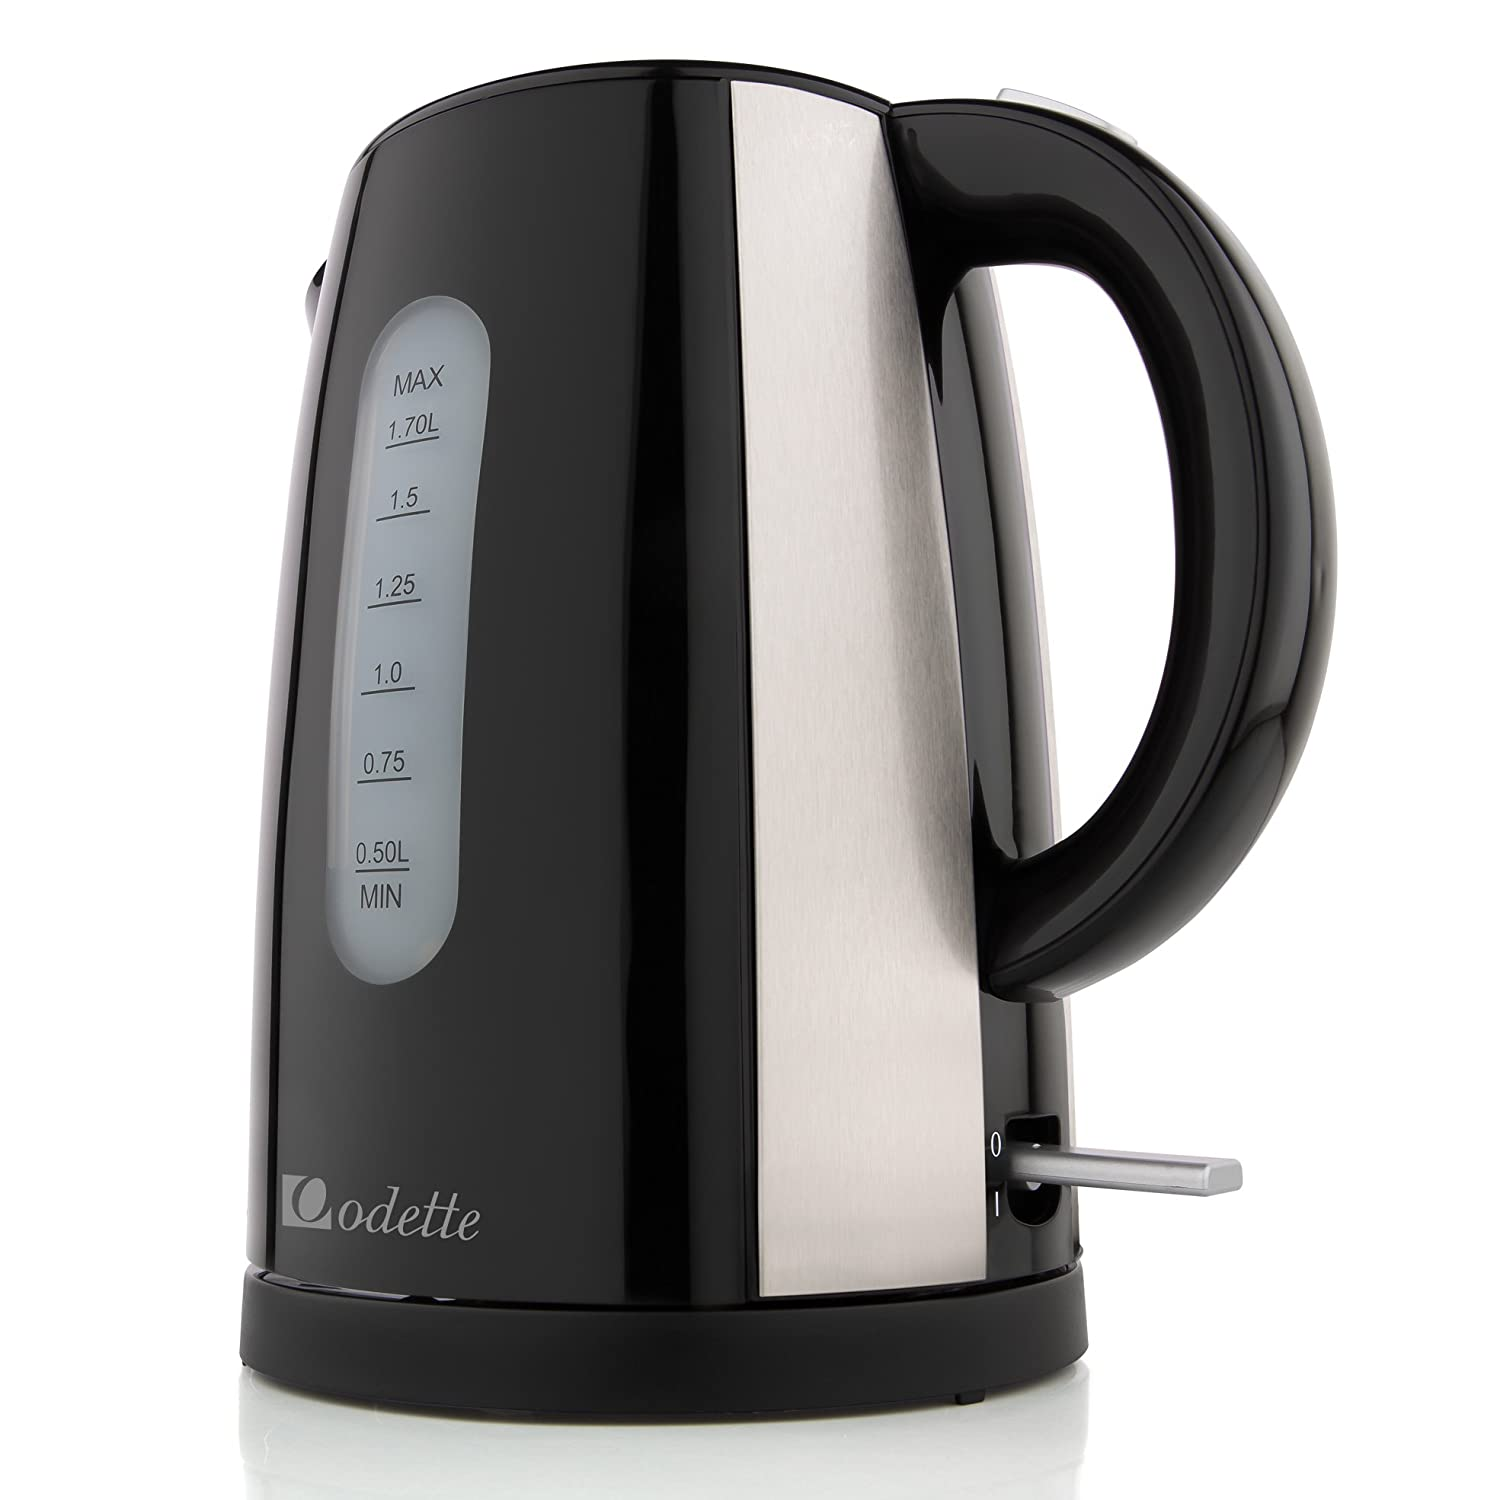 Odette Fast Boil 7 Cup (1.7 Liter) BPA-Free Cordless Black Electric Kettle with Auto Shut Off, Boil Dry Protection and Double Layer Handle for Cool Touch